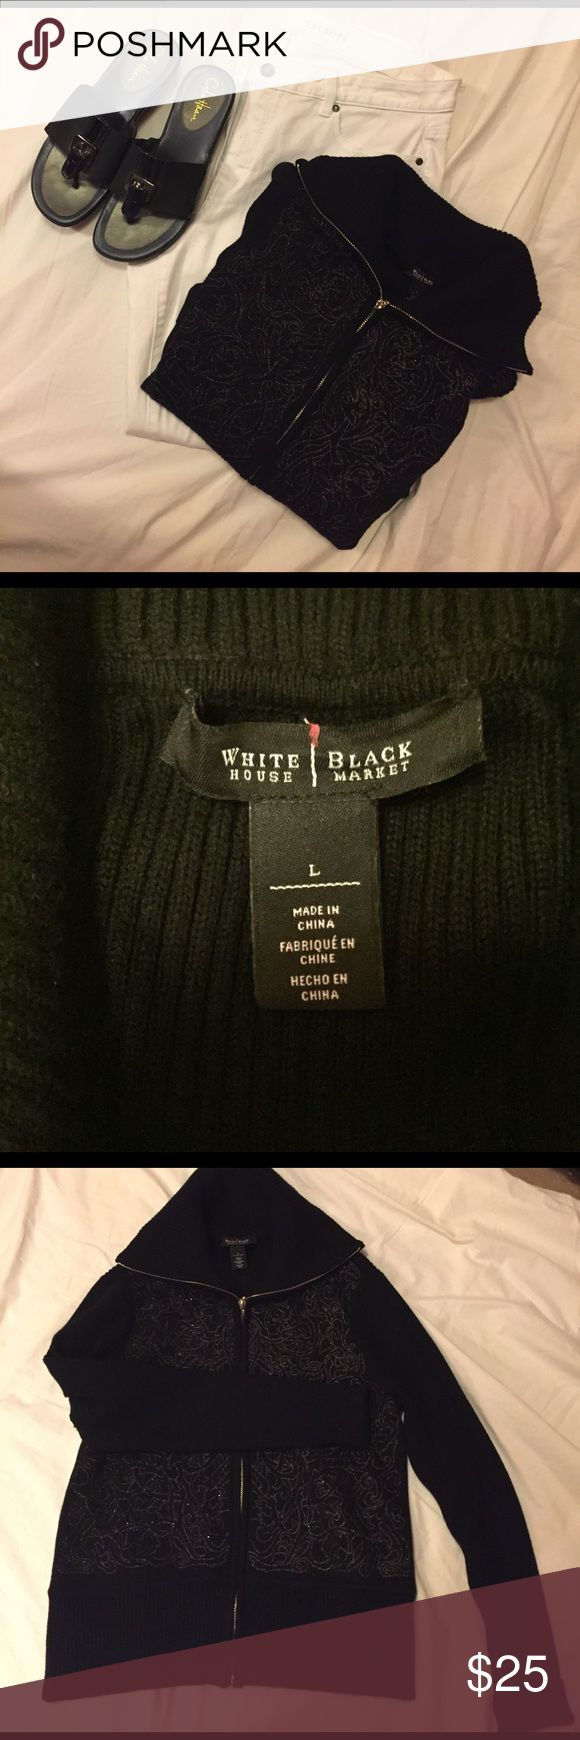 """White House/Black Market zip up sweater From White House/Black Market, womens size lg, in black w/gold embellishments on front & zips up. Has a collar and is absolutely gorgeous. Arms are cuffed, but don't have to be. Heavy material for a cold day, as it has 9% wool in it, but very comfy. All black (except where gold) is ribbed. Measures (laying flat) 18 1/2"""" across front underarms, 18"""" across bottom & 14"""" long from underarm to bottom. Has a lot of stretch though, so you can get 2"""" more…"""